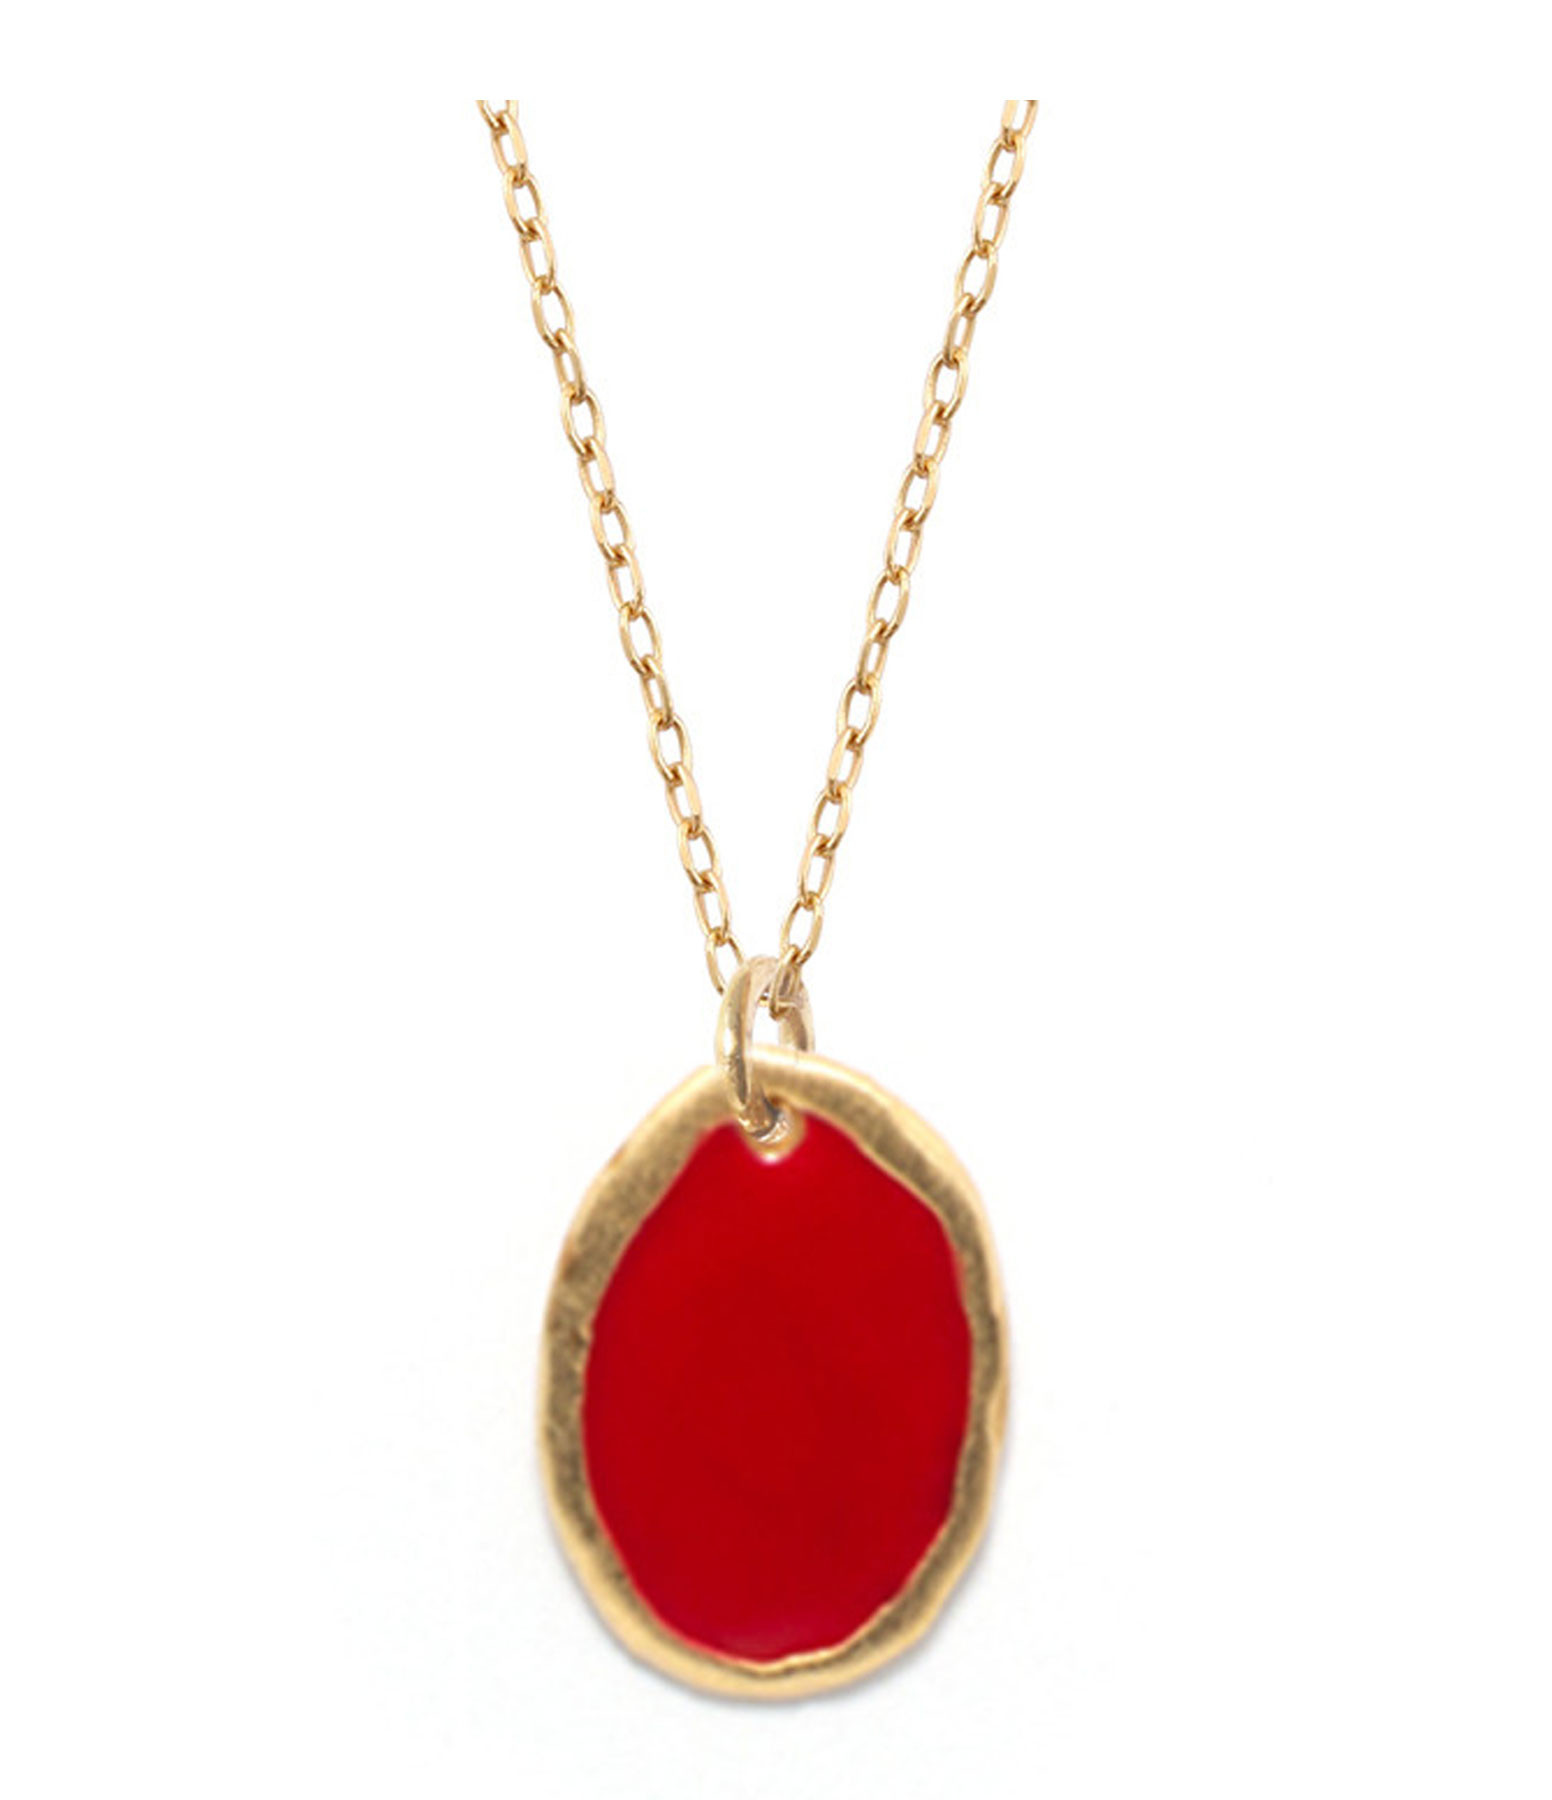 LSONGE - Collier Lumy Médaille M Rouge